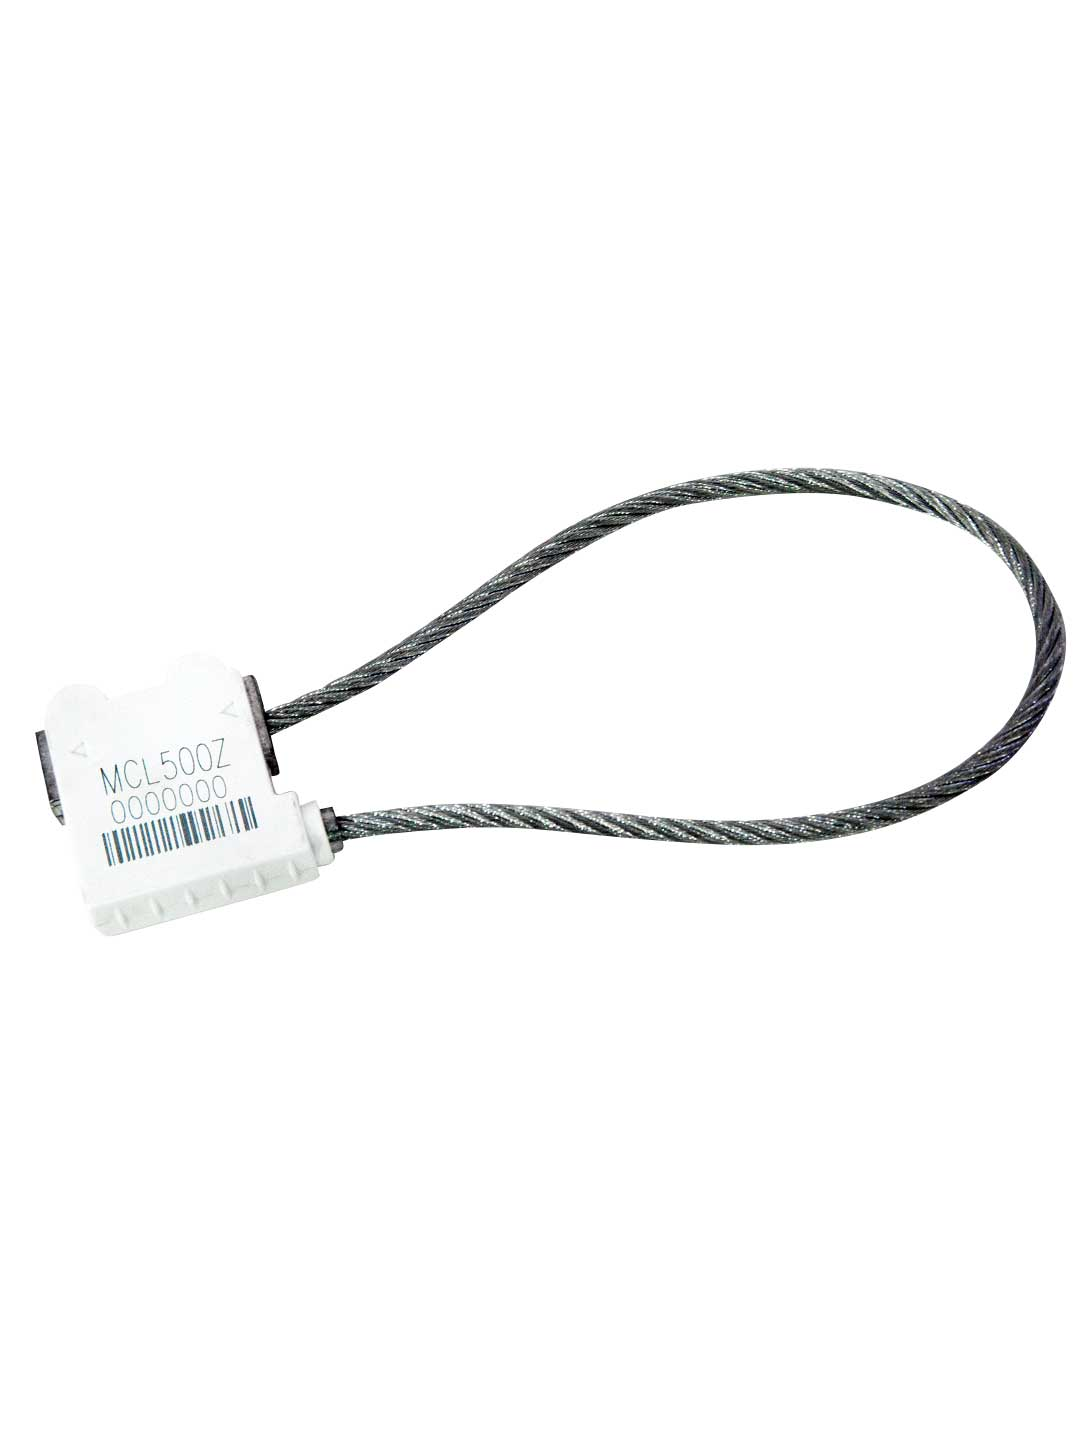 mclz500 high security cable seal